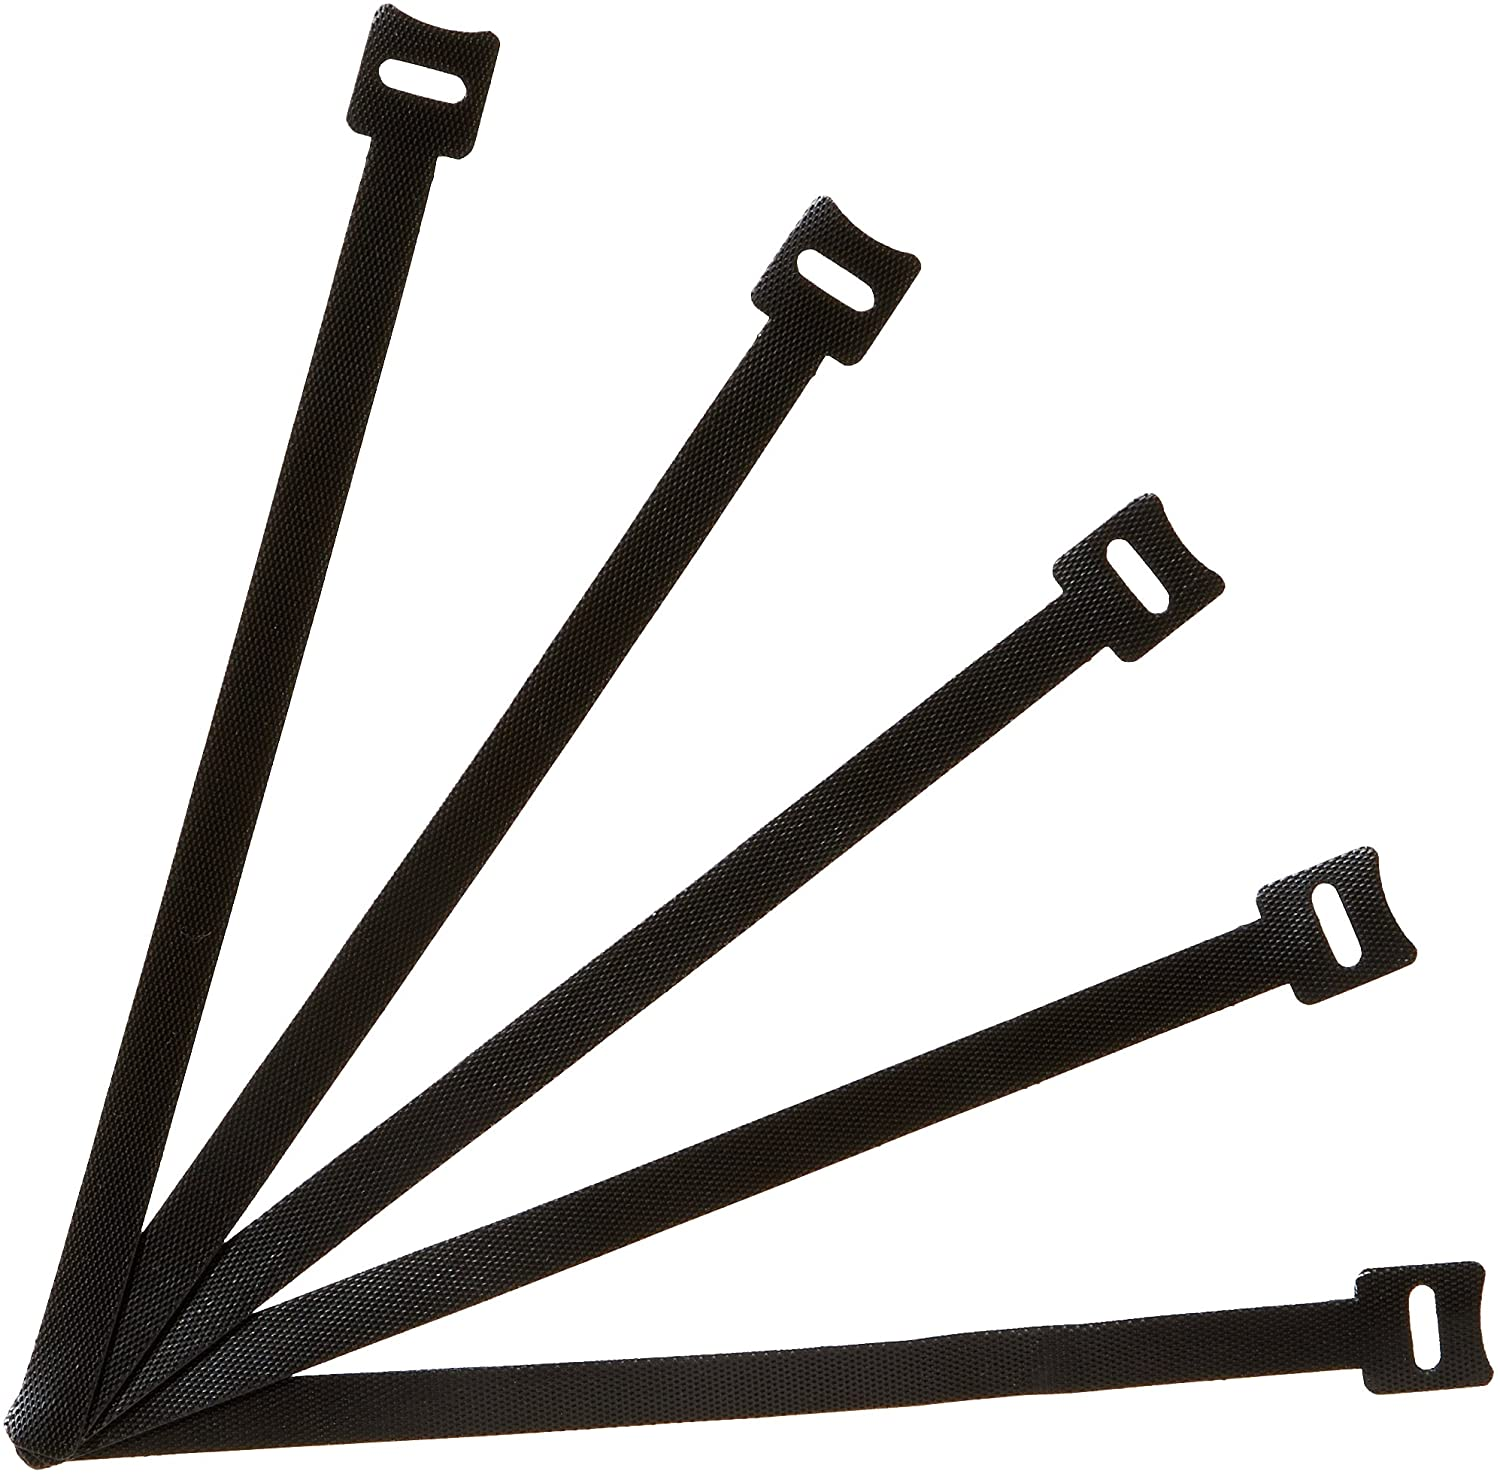 AmazonBasics Reusable Cable Zip Ties - 8-Inch, 50-Pack